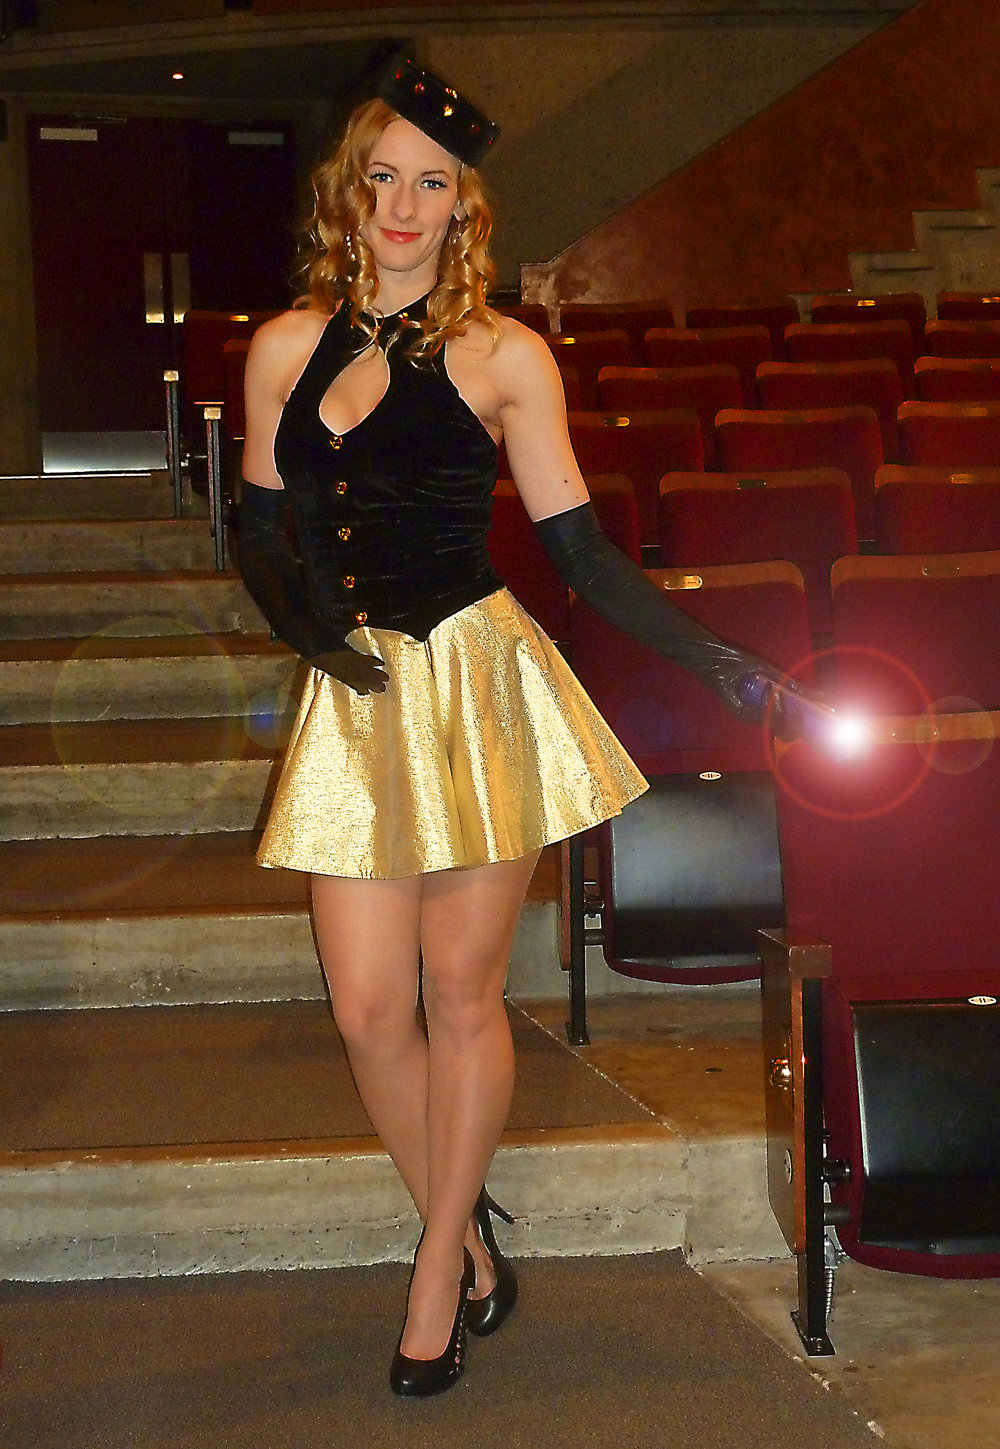 Actress Kristin Brown as the Usherette taking the audience into the nostalgic journey into the world of rapidly disappearing heritage movie palaces of history.